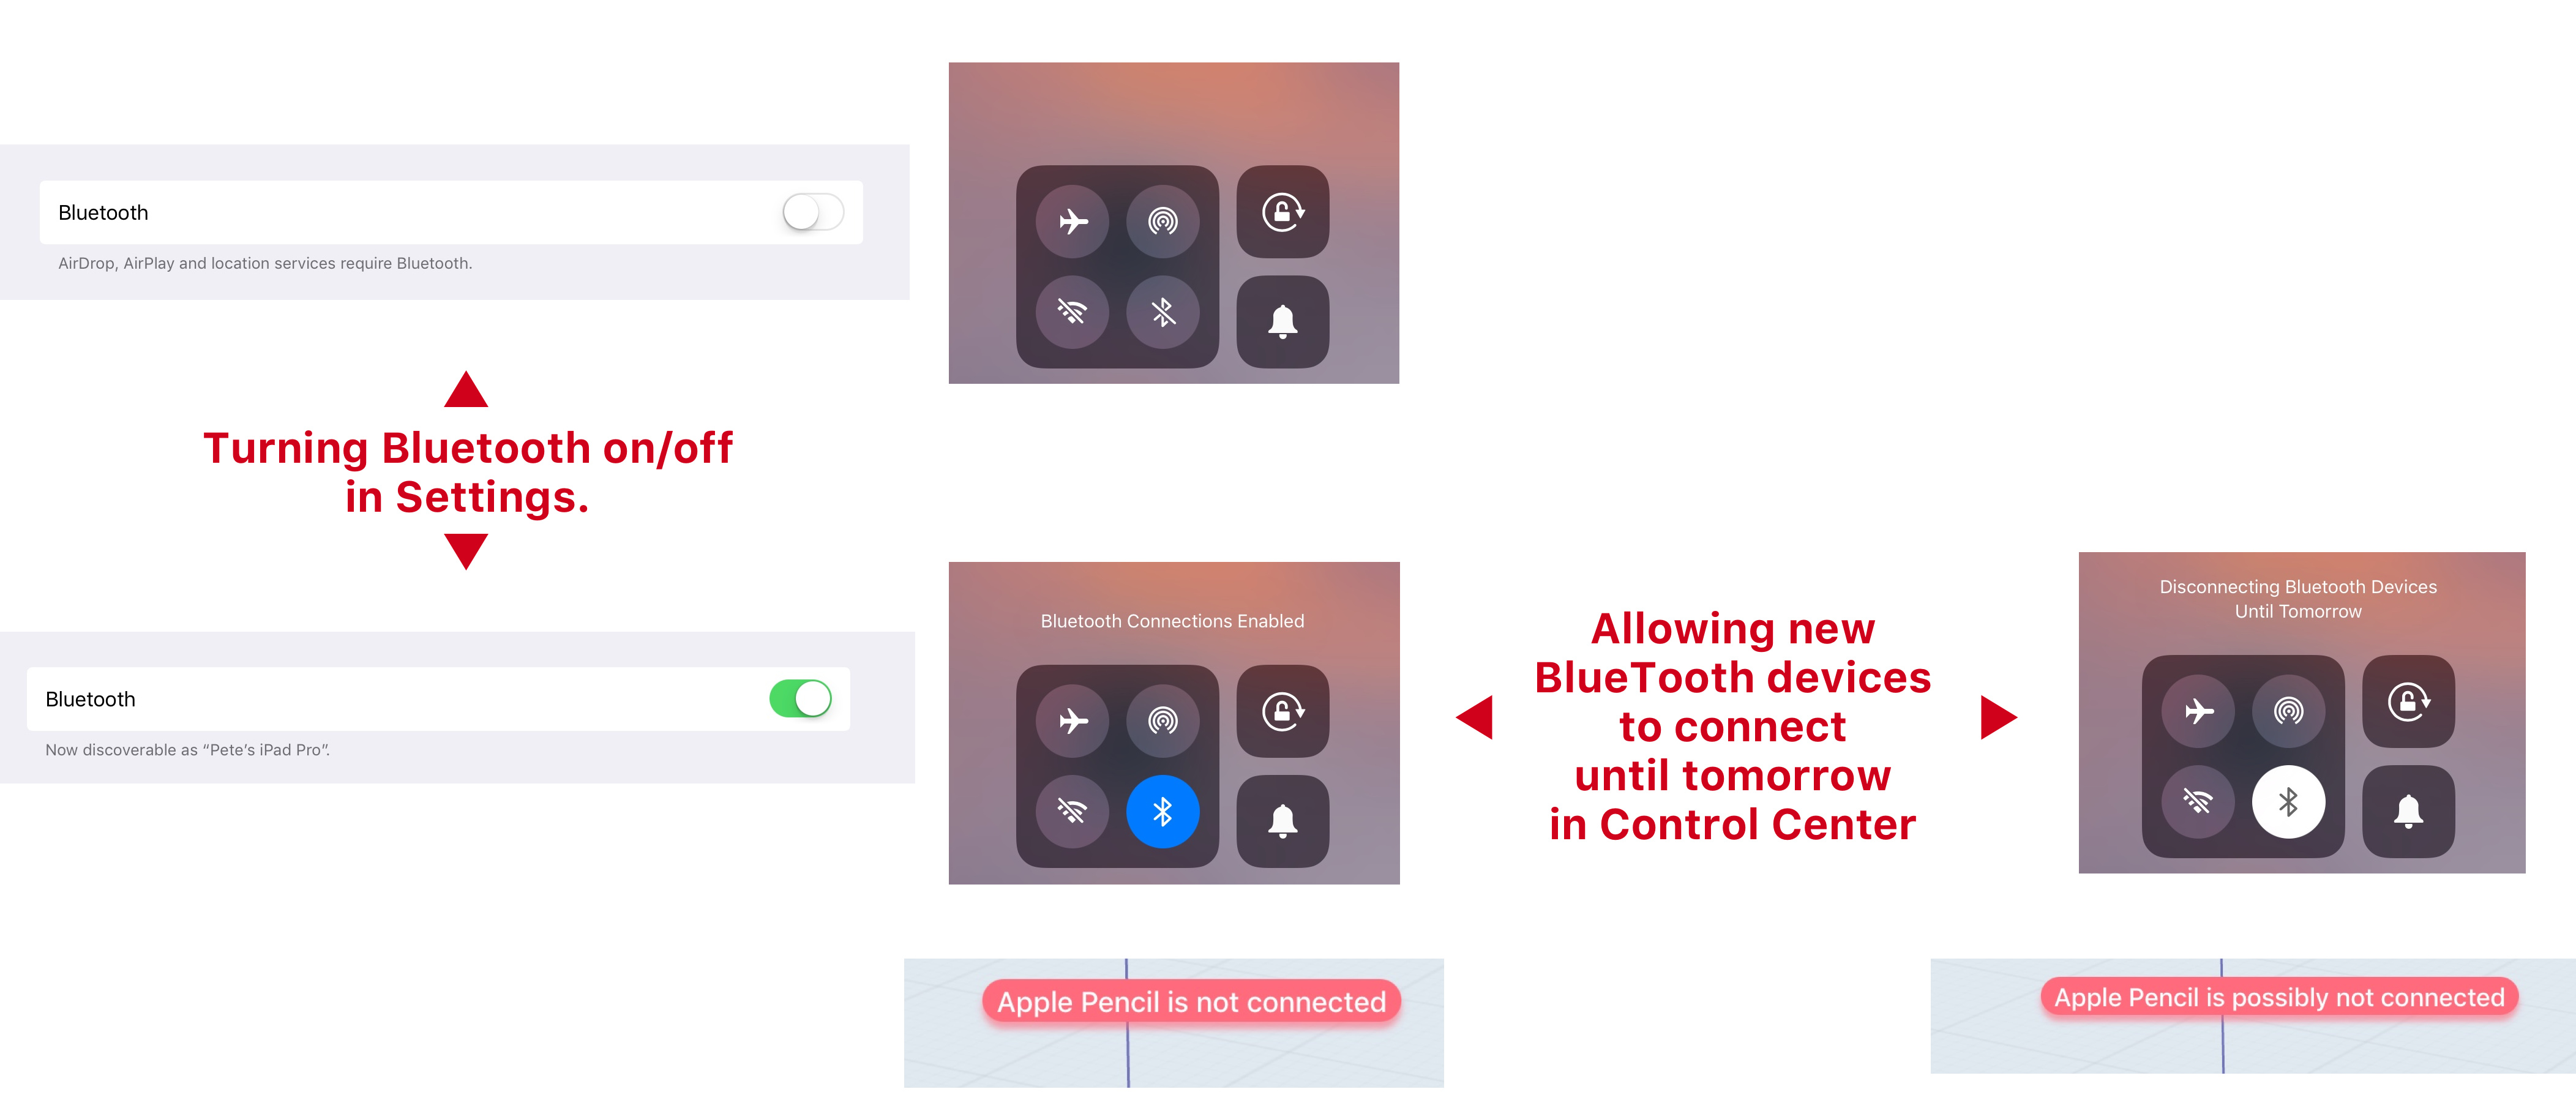 3-state-BlueTooth-button-in-Control-Center